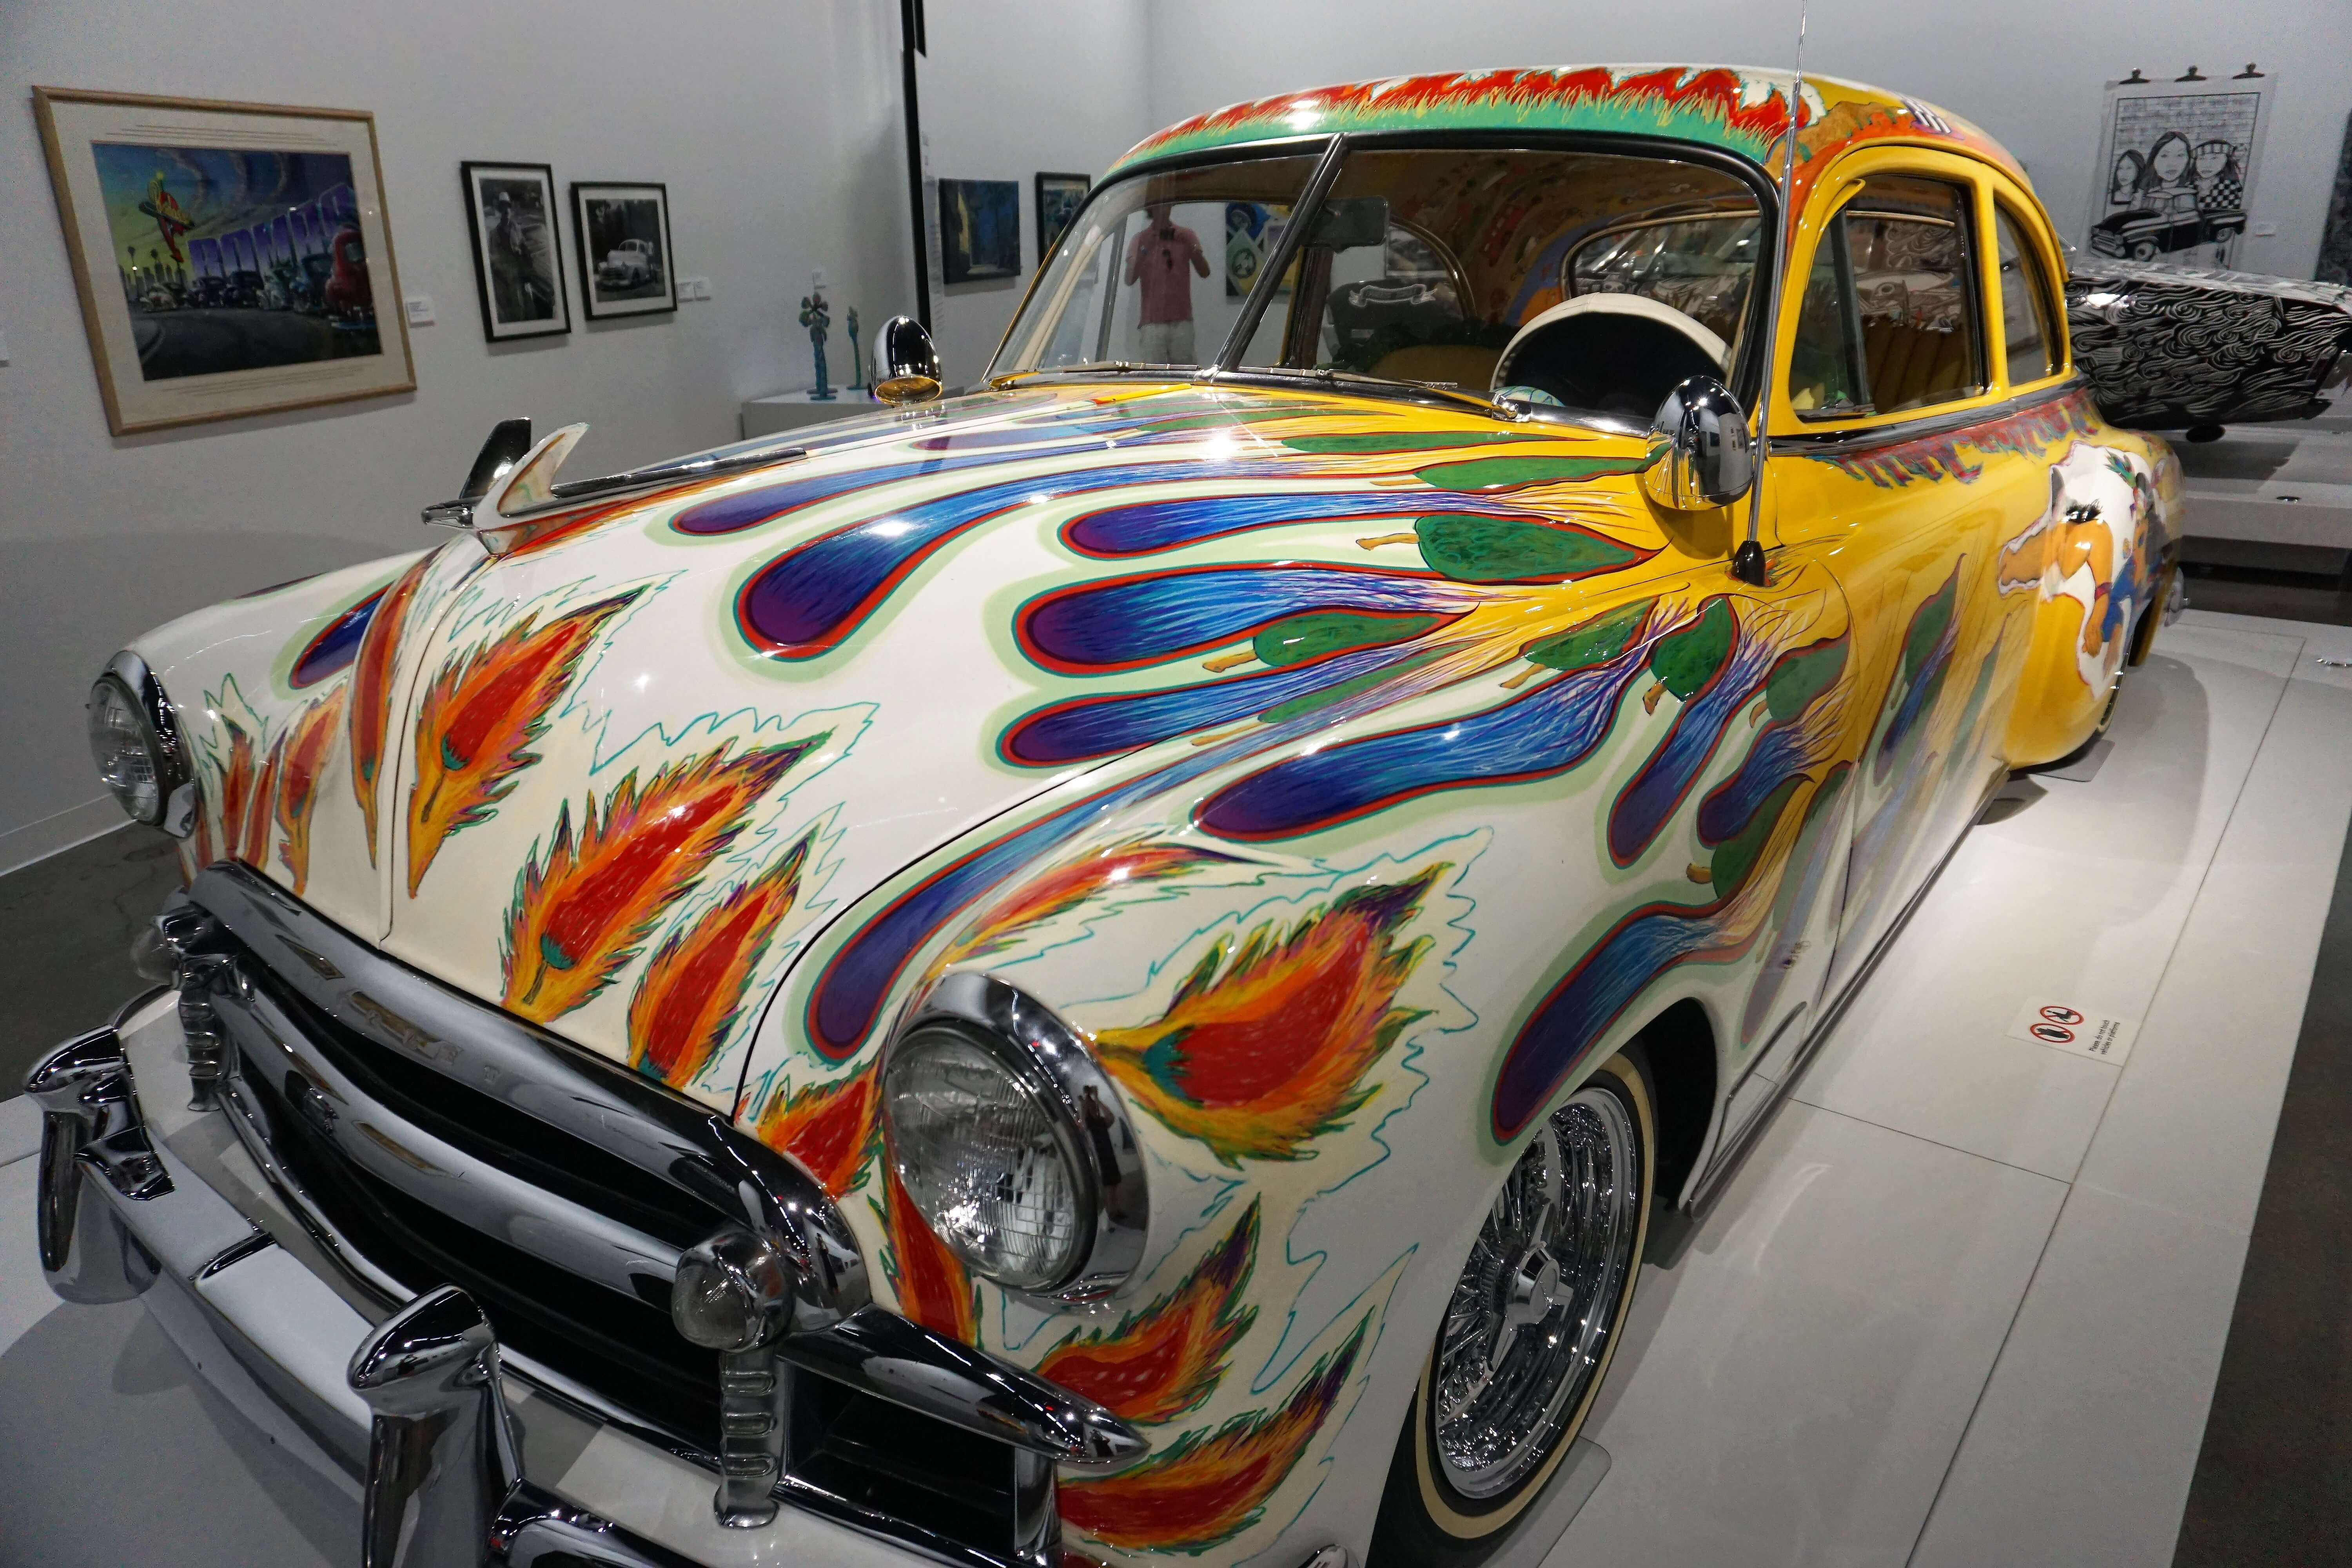 Part of the low-rider exhibit at the Petersen Automotive Museum